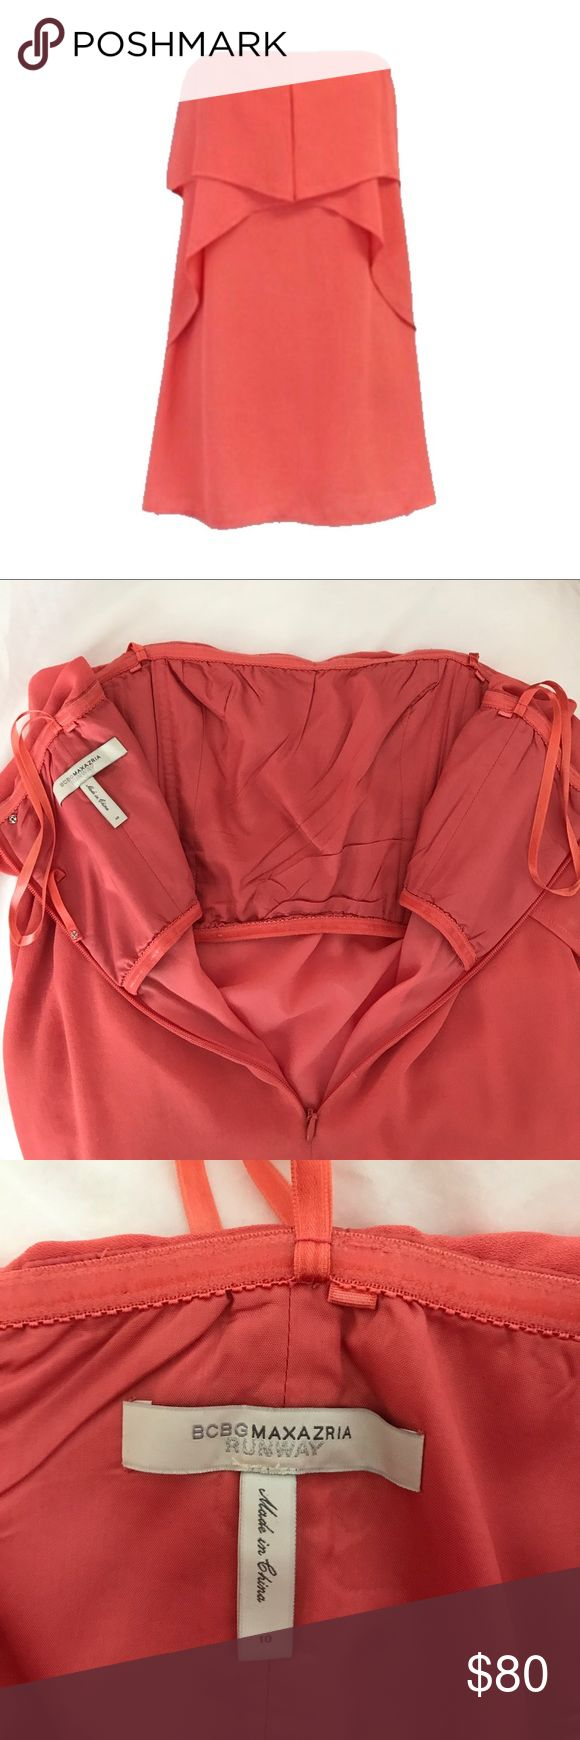 BCBG MaxAzaria Fei Fei Coral Strapless Dress Only worn once. Perfect condition. Great for summer weddings or vacation! Built in bustier means no strapless bra needed! Tan mesh hem removed (see photo with model to see what it looked like). I preferred it without. BCBGMaxAzria Dresses Strapless